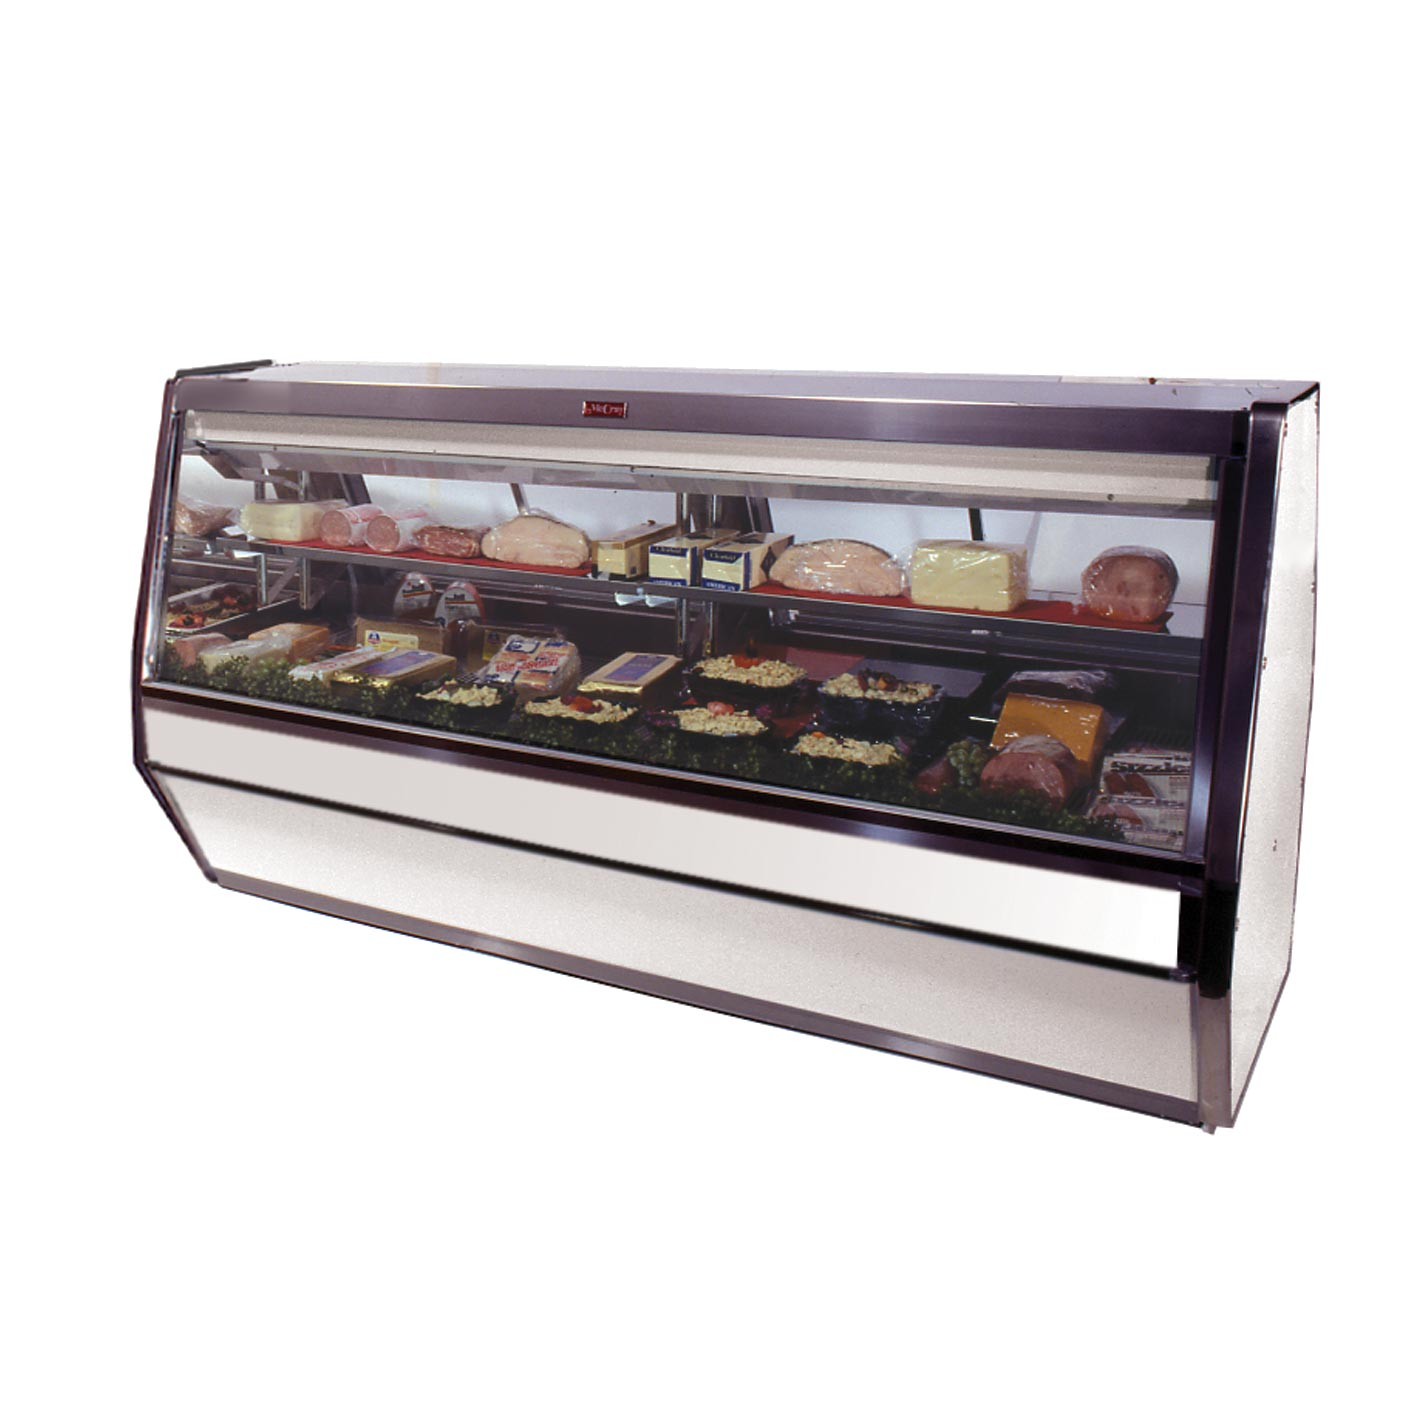 Howard-McCray R-CDS40E-10-S-LED display case, refrigerated deli